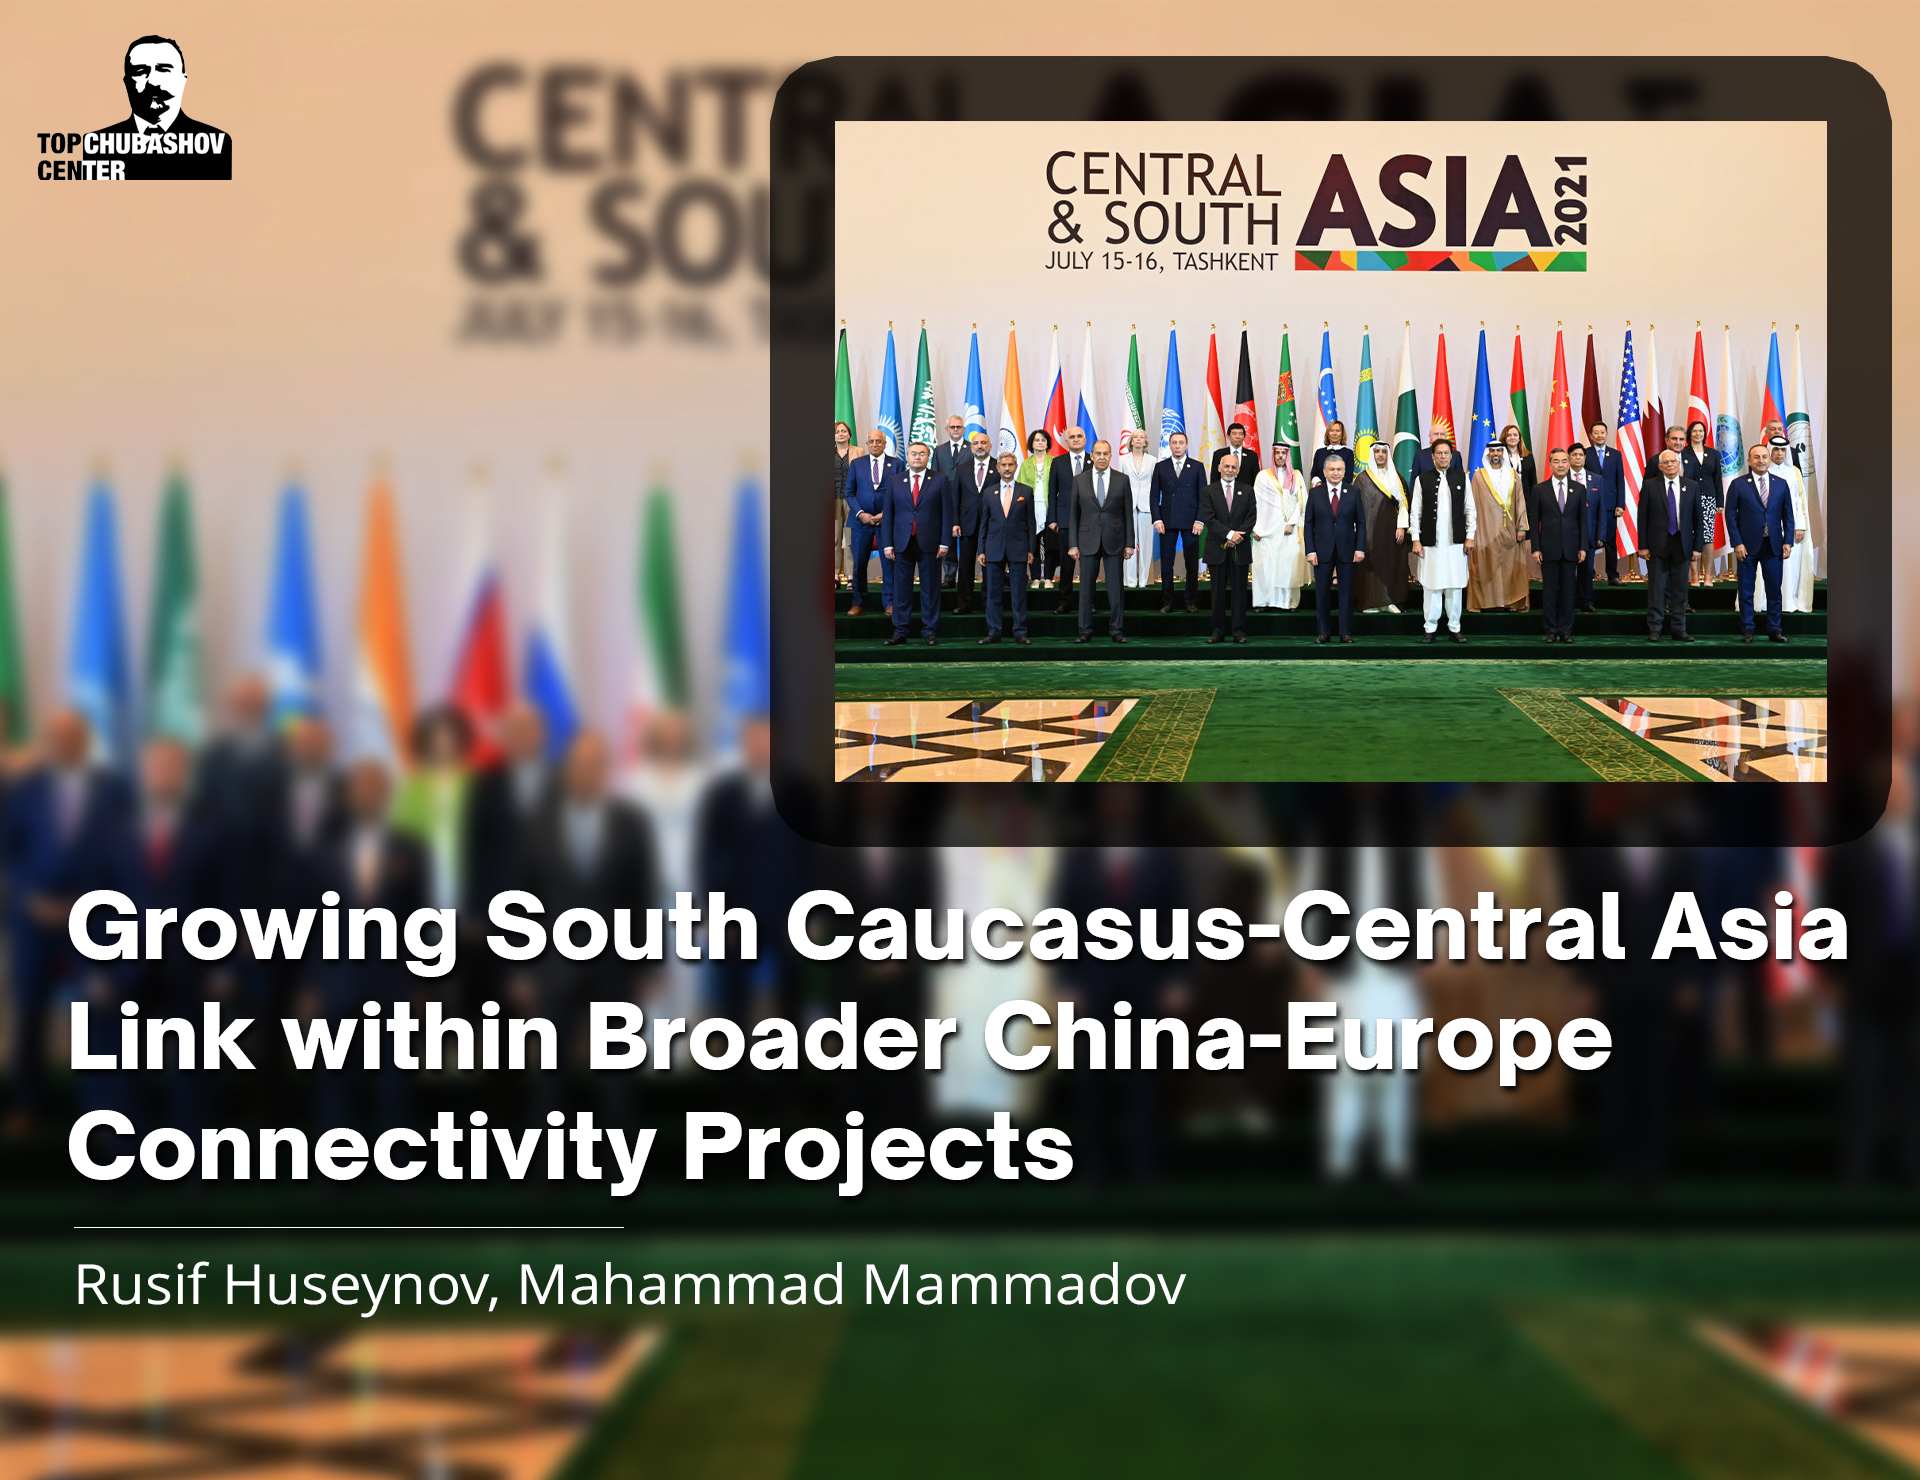 Growing South Caucasus-Central Asia Link within Broader China-Europe Connectivity Projects